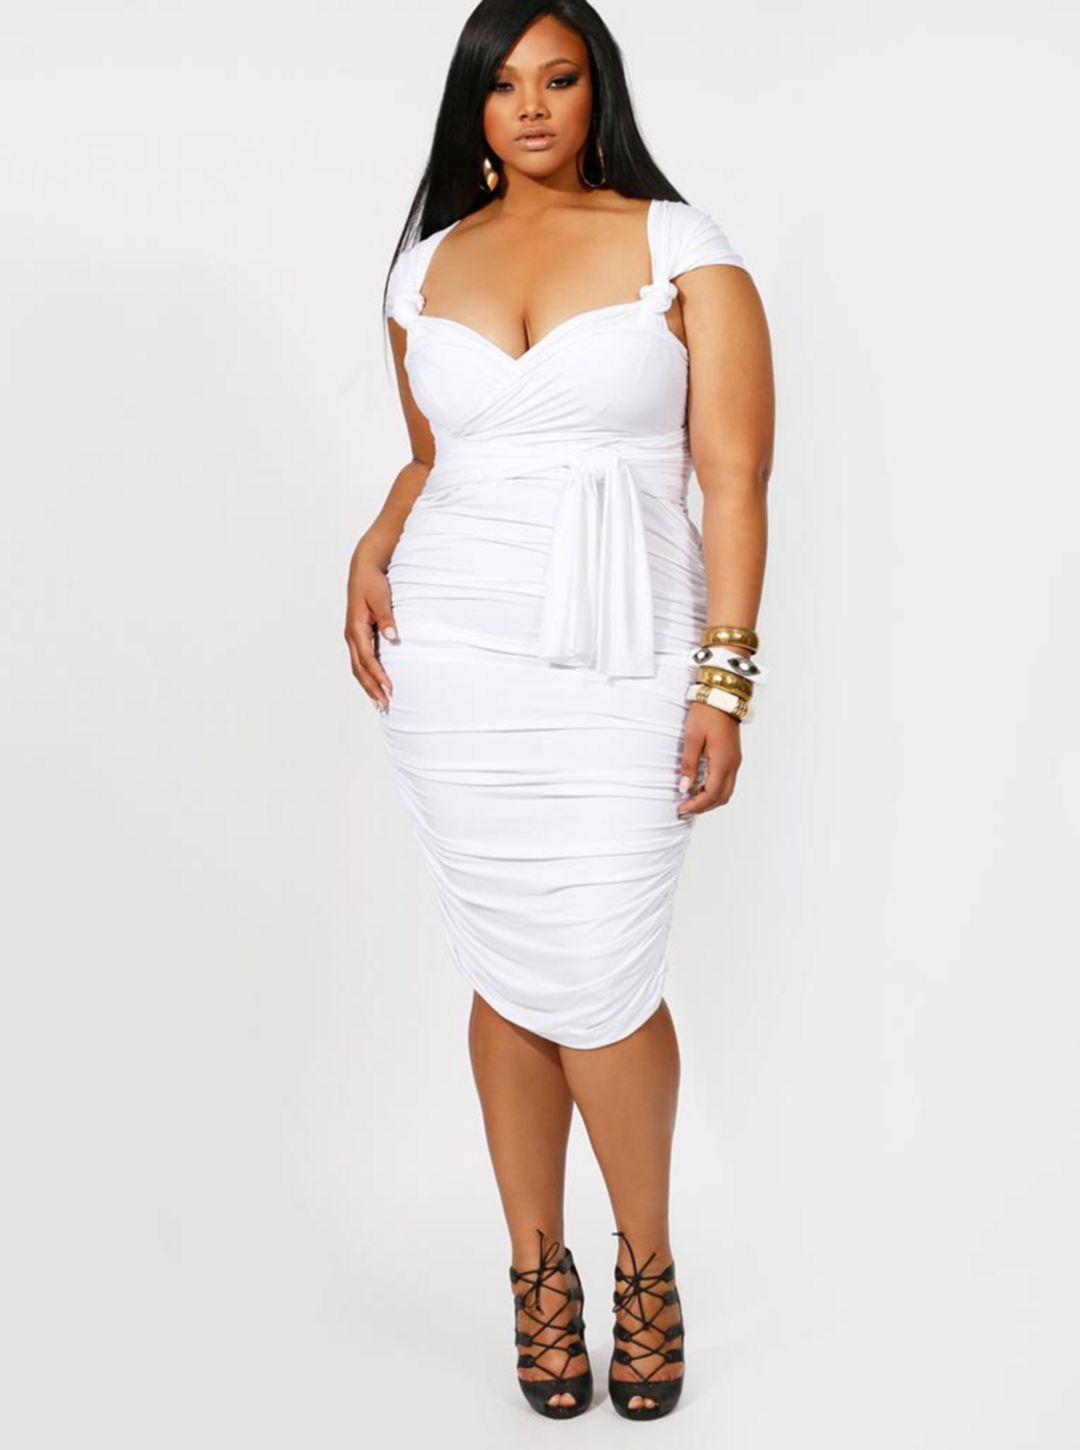 11 inspirational party dress ideas for curvy bodied women